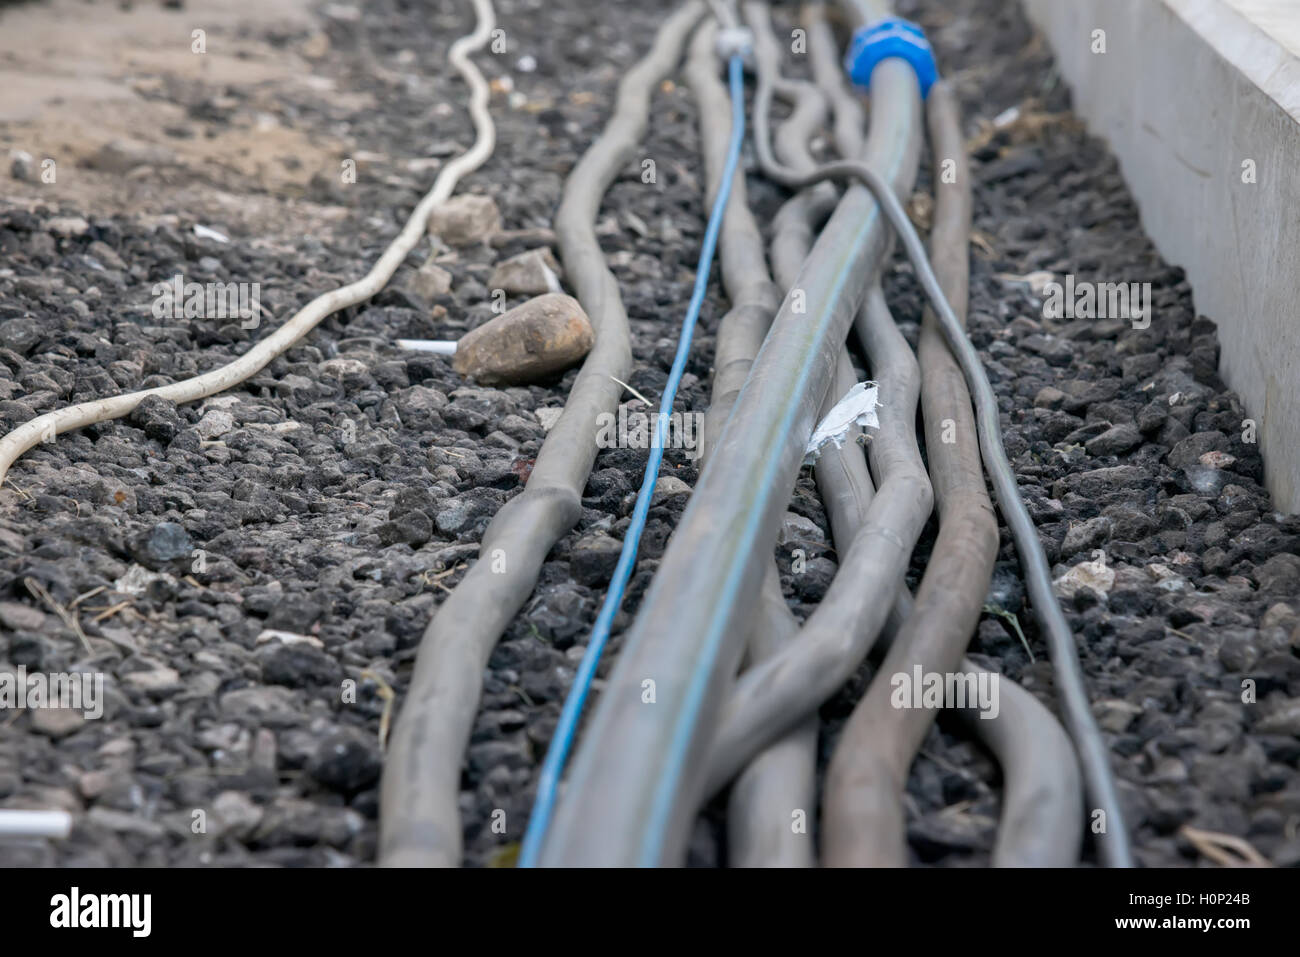 Grounding Cable Stockfotos & Grounding Cable Bilder - Alamy